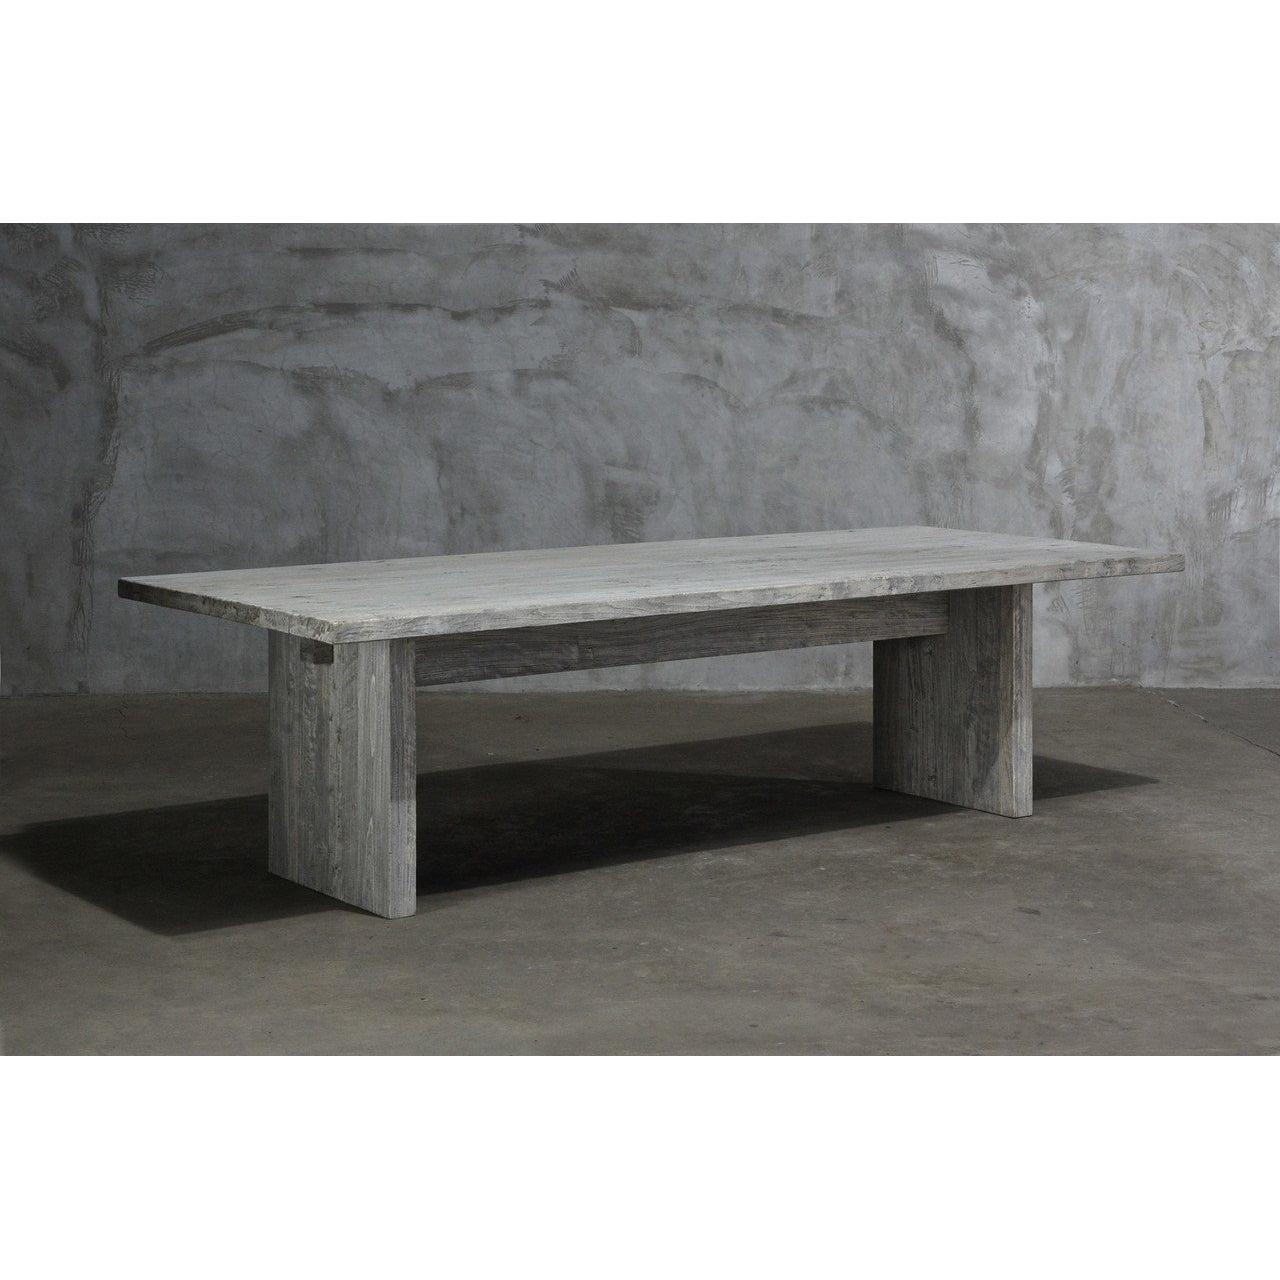 Reclaimed Elm Large Dining Table - Solid Leg